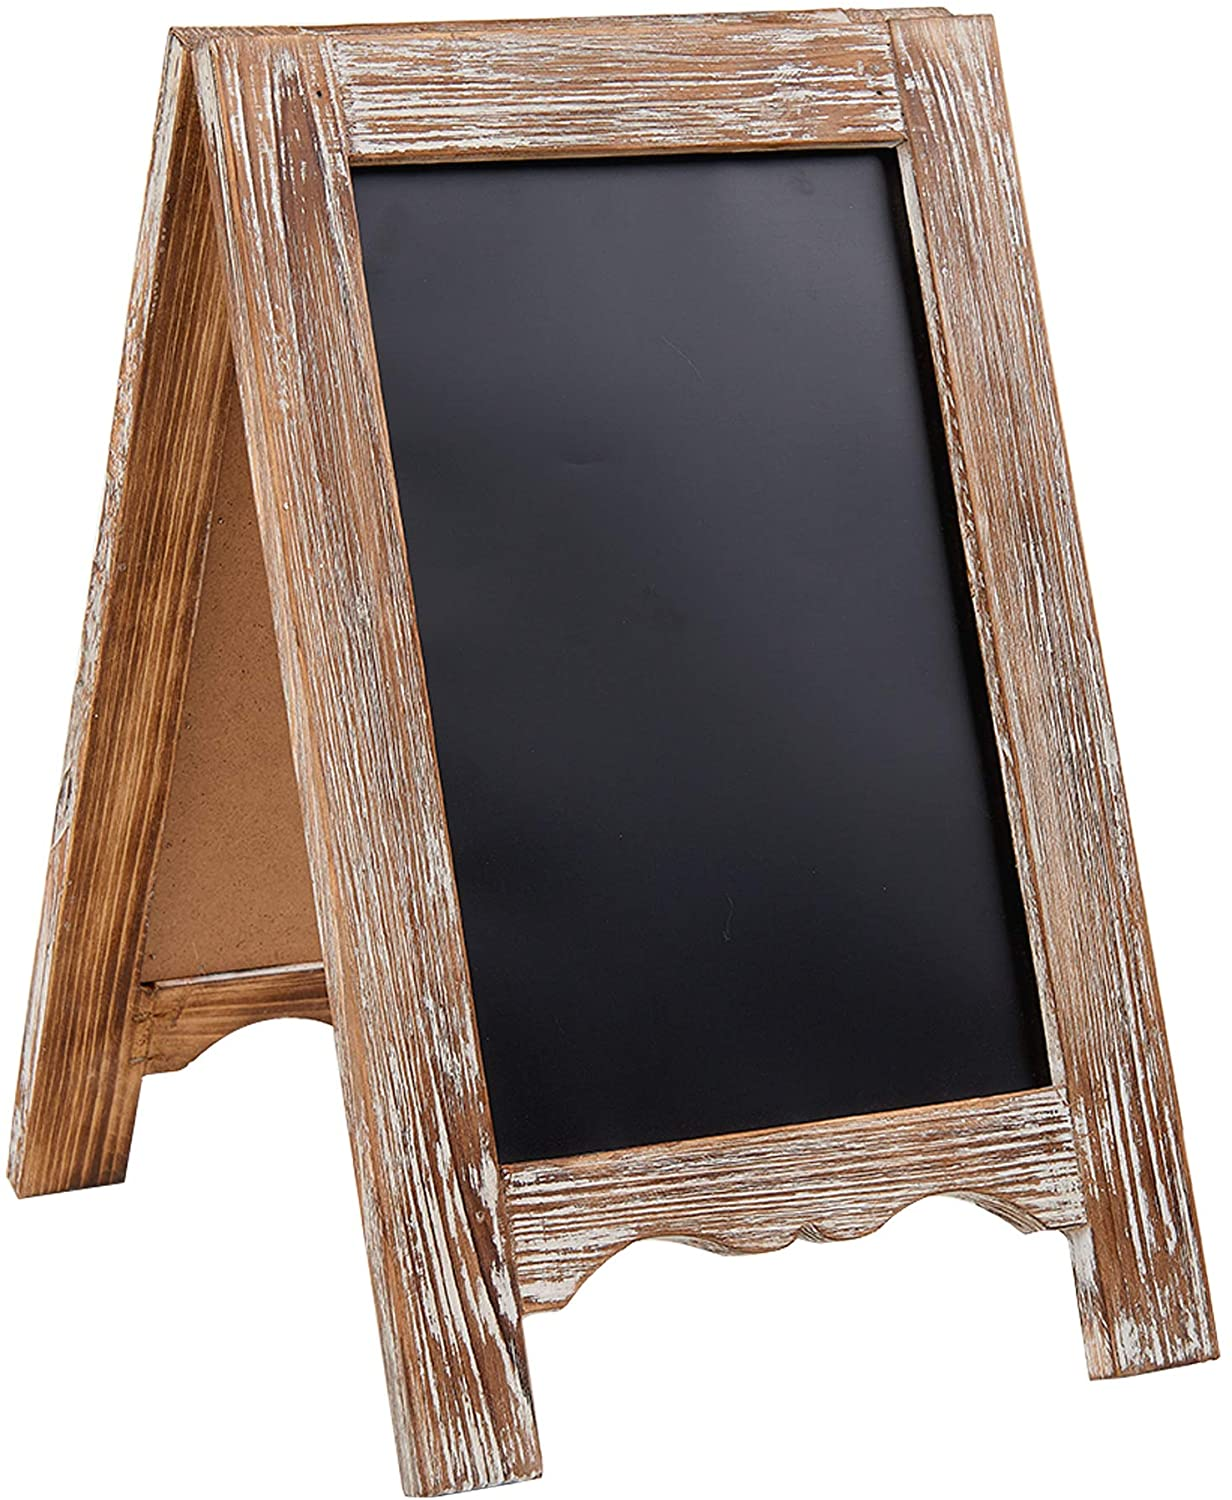 Rustic Distressed Wood Magnetic A-Frame Chalkboard Sign - Free Standing Double Sided Easel Display Board - Yola WhiteBoard | szyola.net